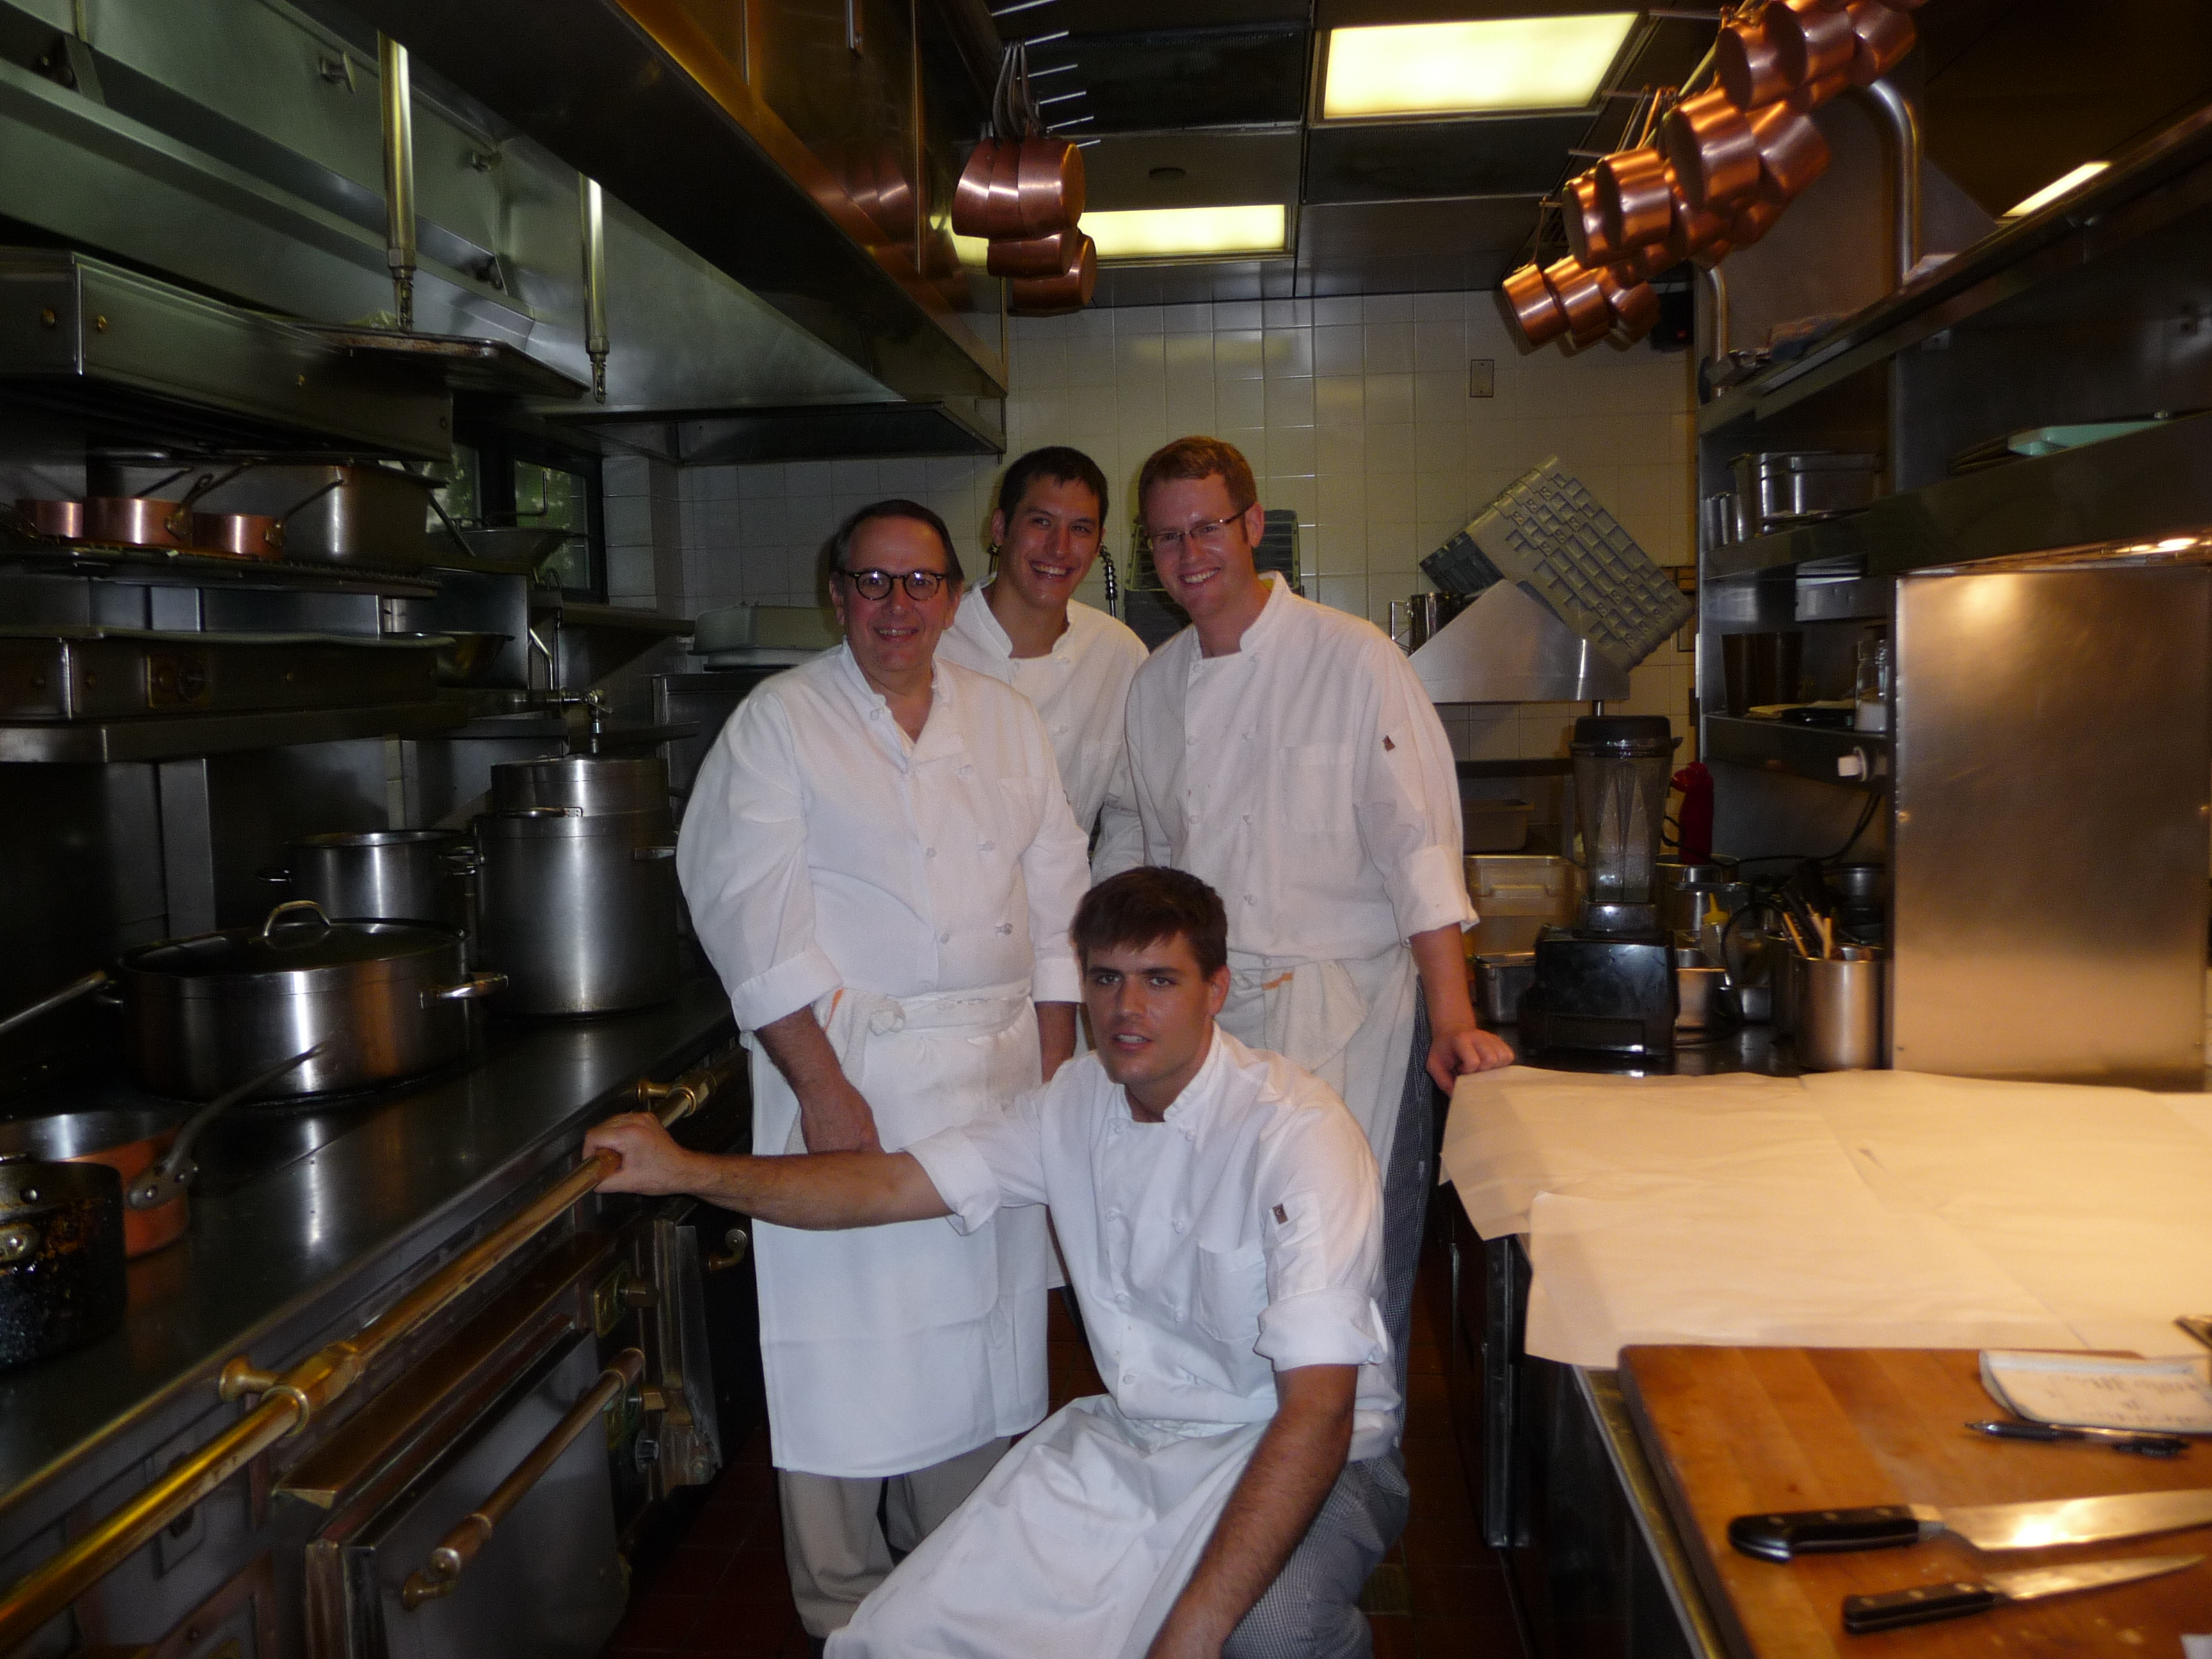 Carl Tiedemann and the Chefs at Charlie Trotter's